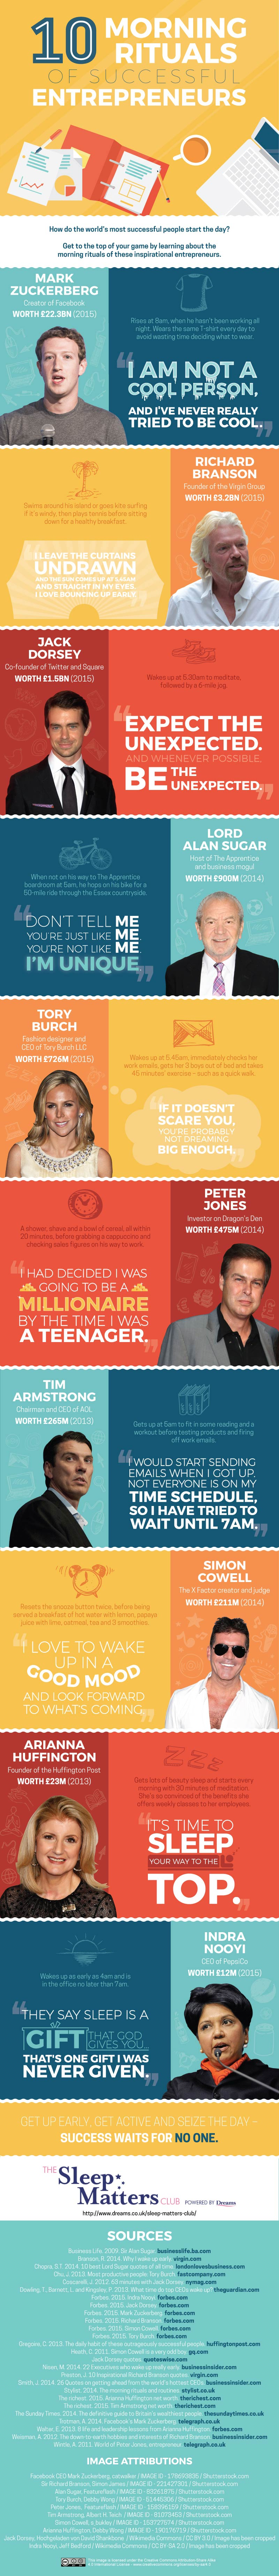 Morning Rituals of Successful Entrepreneurs Infographic